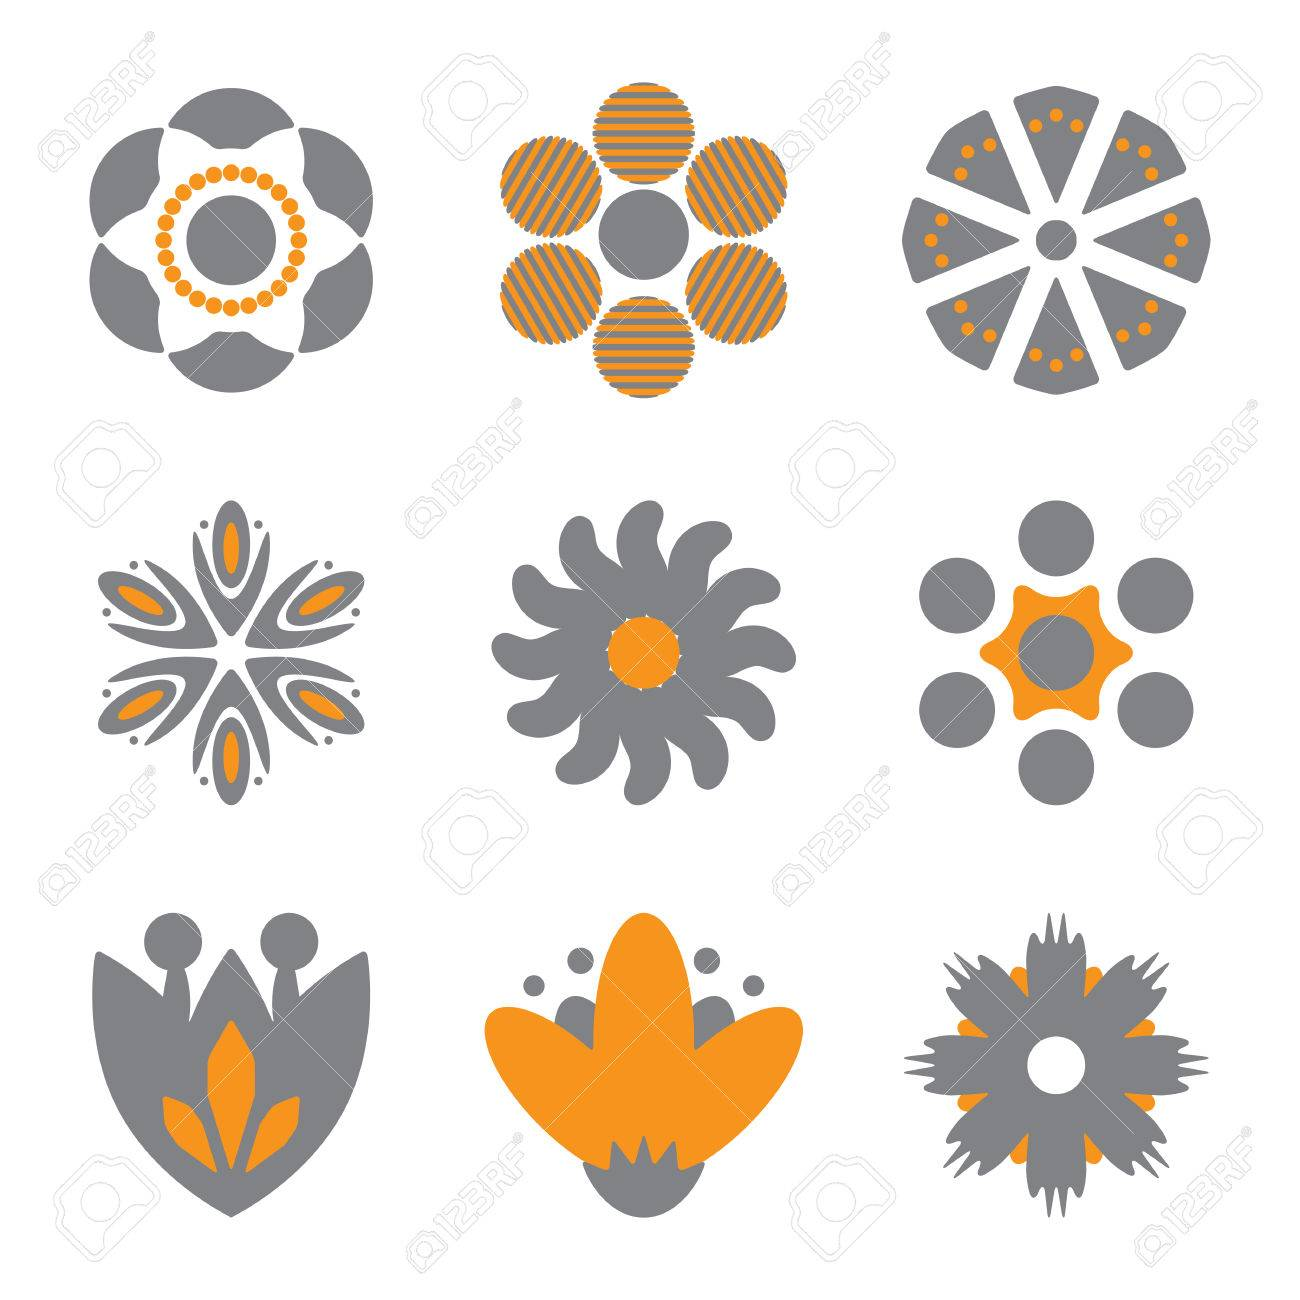 Simple flower vector icons of different shapes spring and summer simple flower vector icons of different shapes spring and summer symbols collection stock vector biocorpaavc